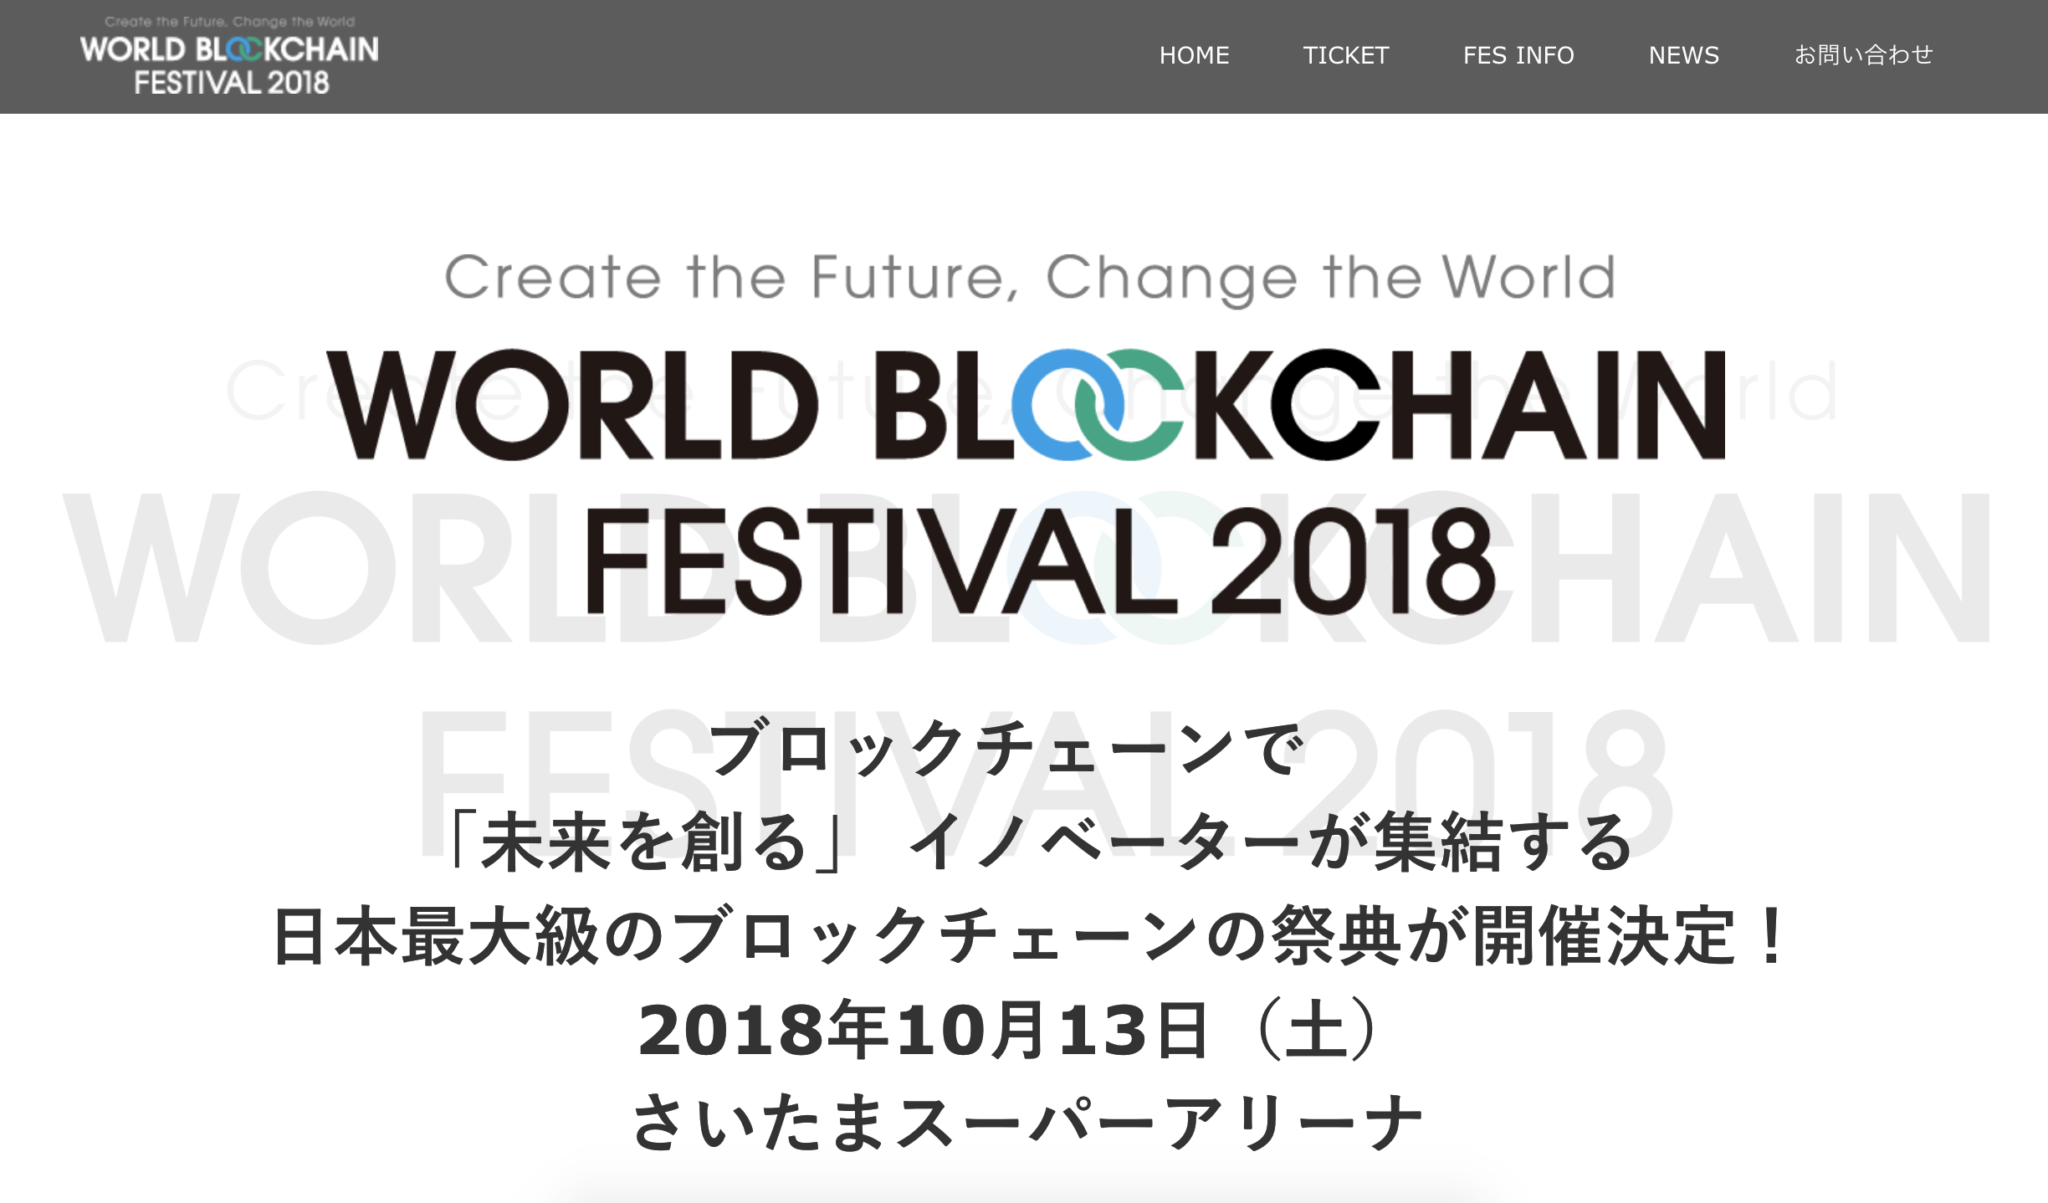 WORLD BLOCKCHAIN FESTIVAL2018の公式サイト画像